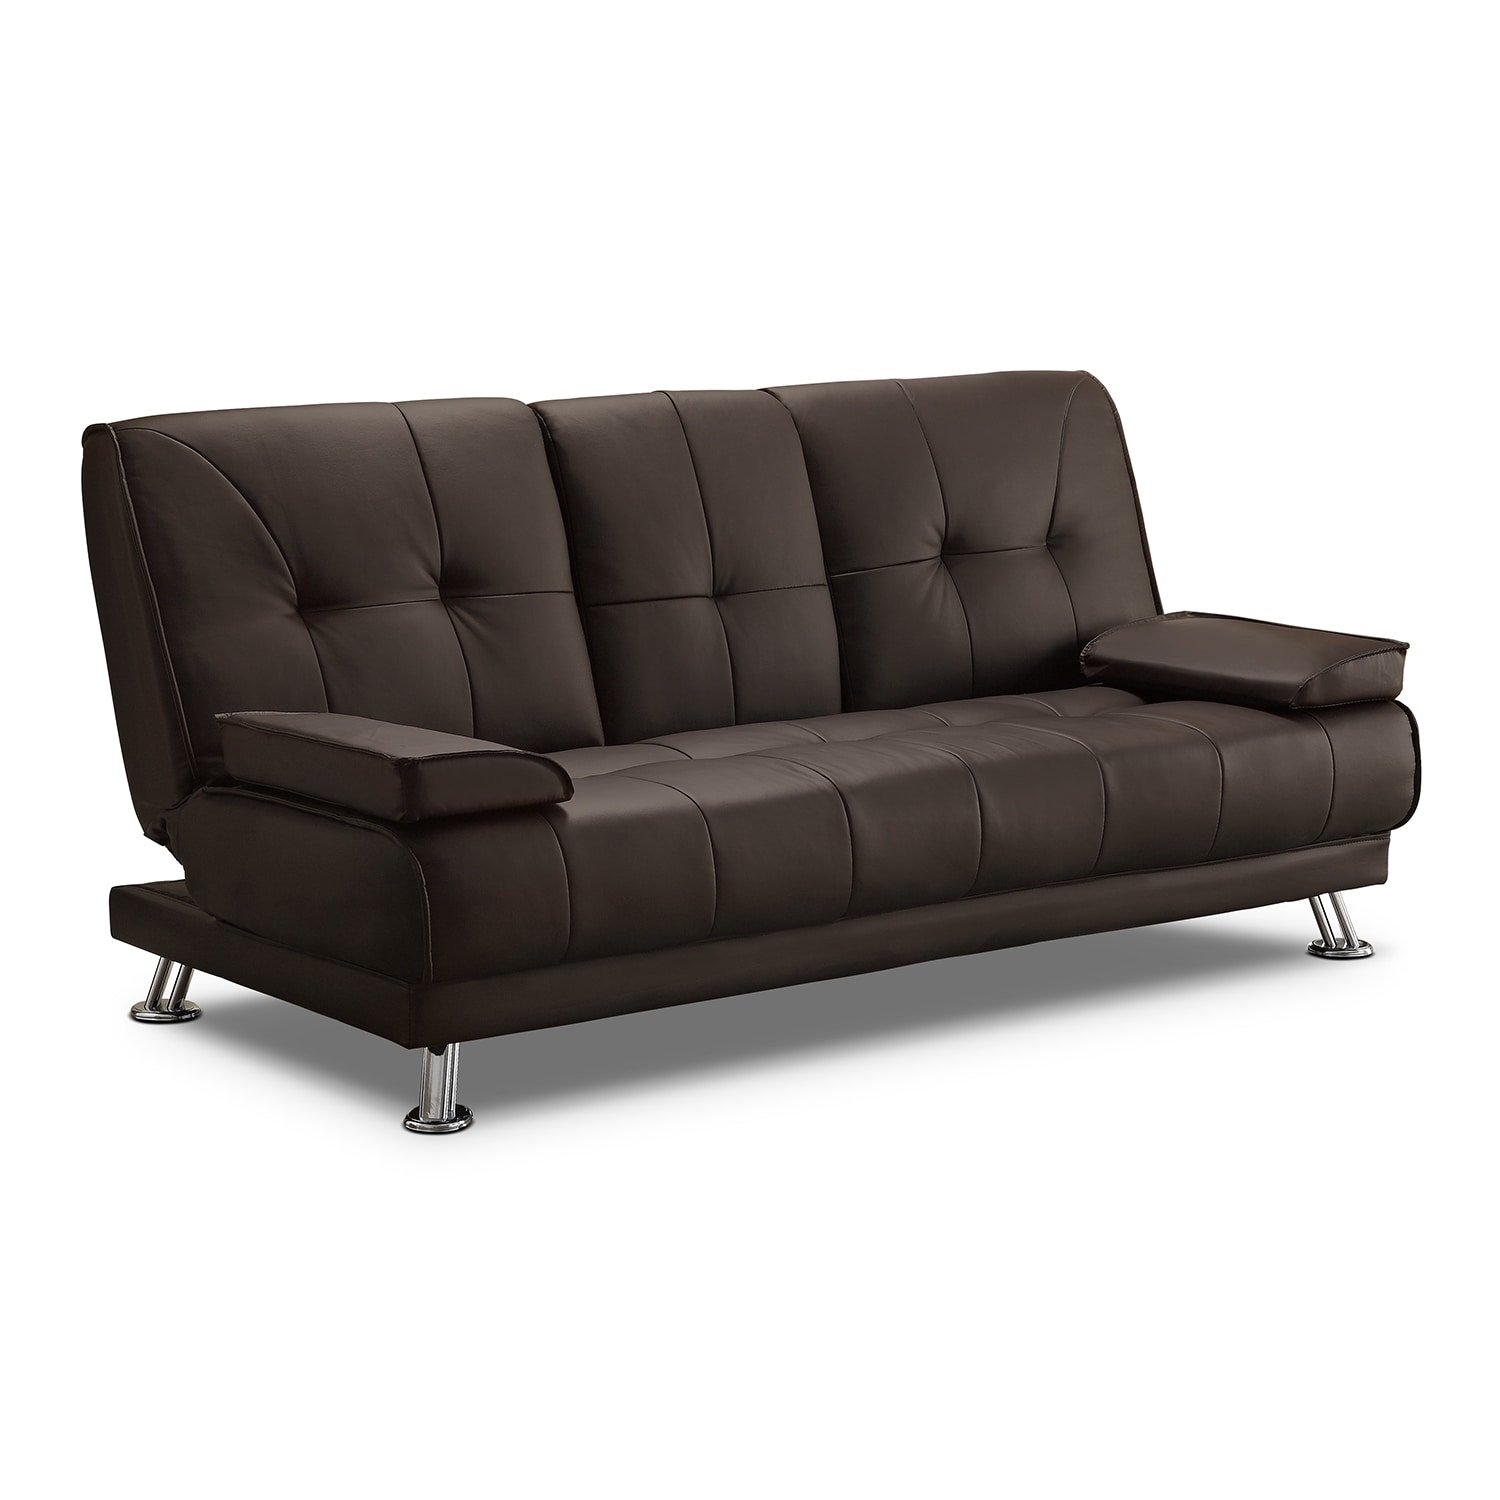 value city furniture futon